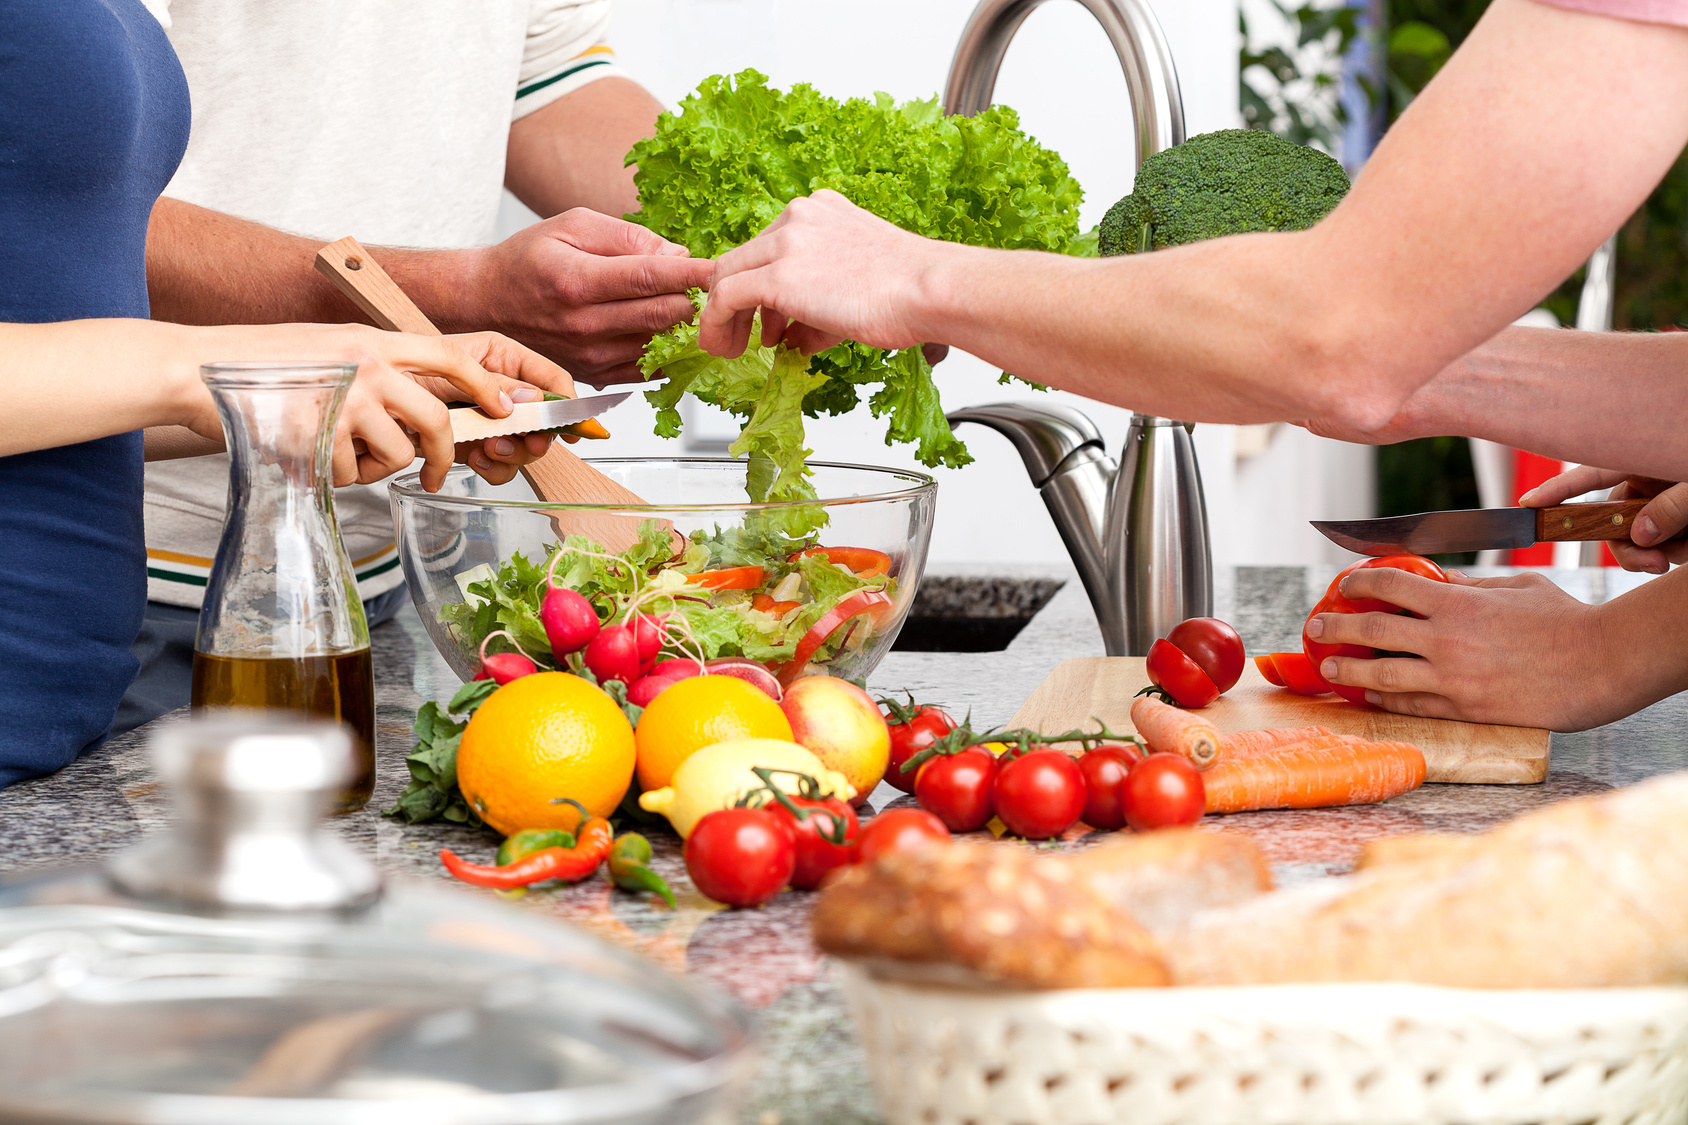 Good Handling Practices Food Safety